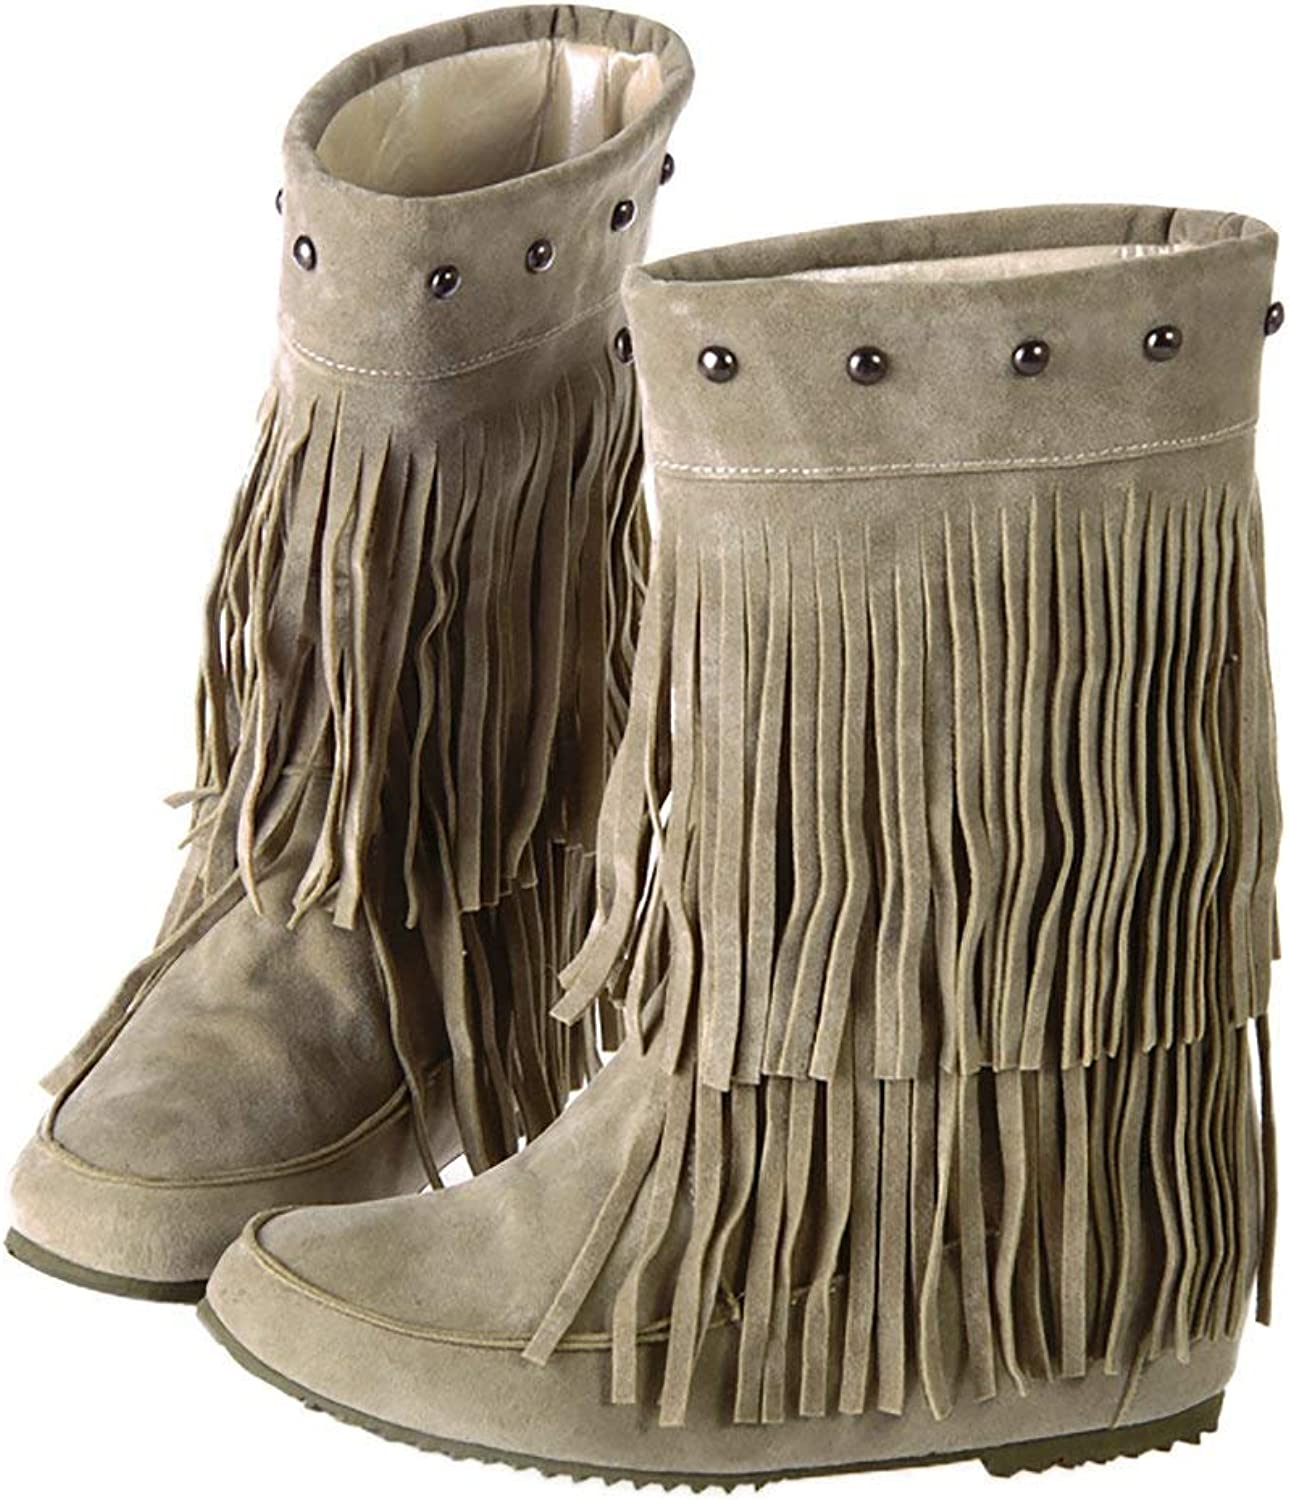 KAOKAOO Suede Fringe Moccasin Boots Mid Calf Women's Round Toe Flat Ladies Winter Fashion Snow Booties